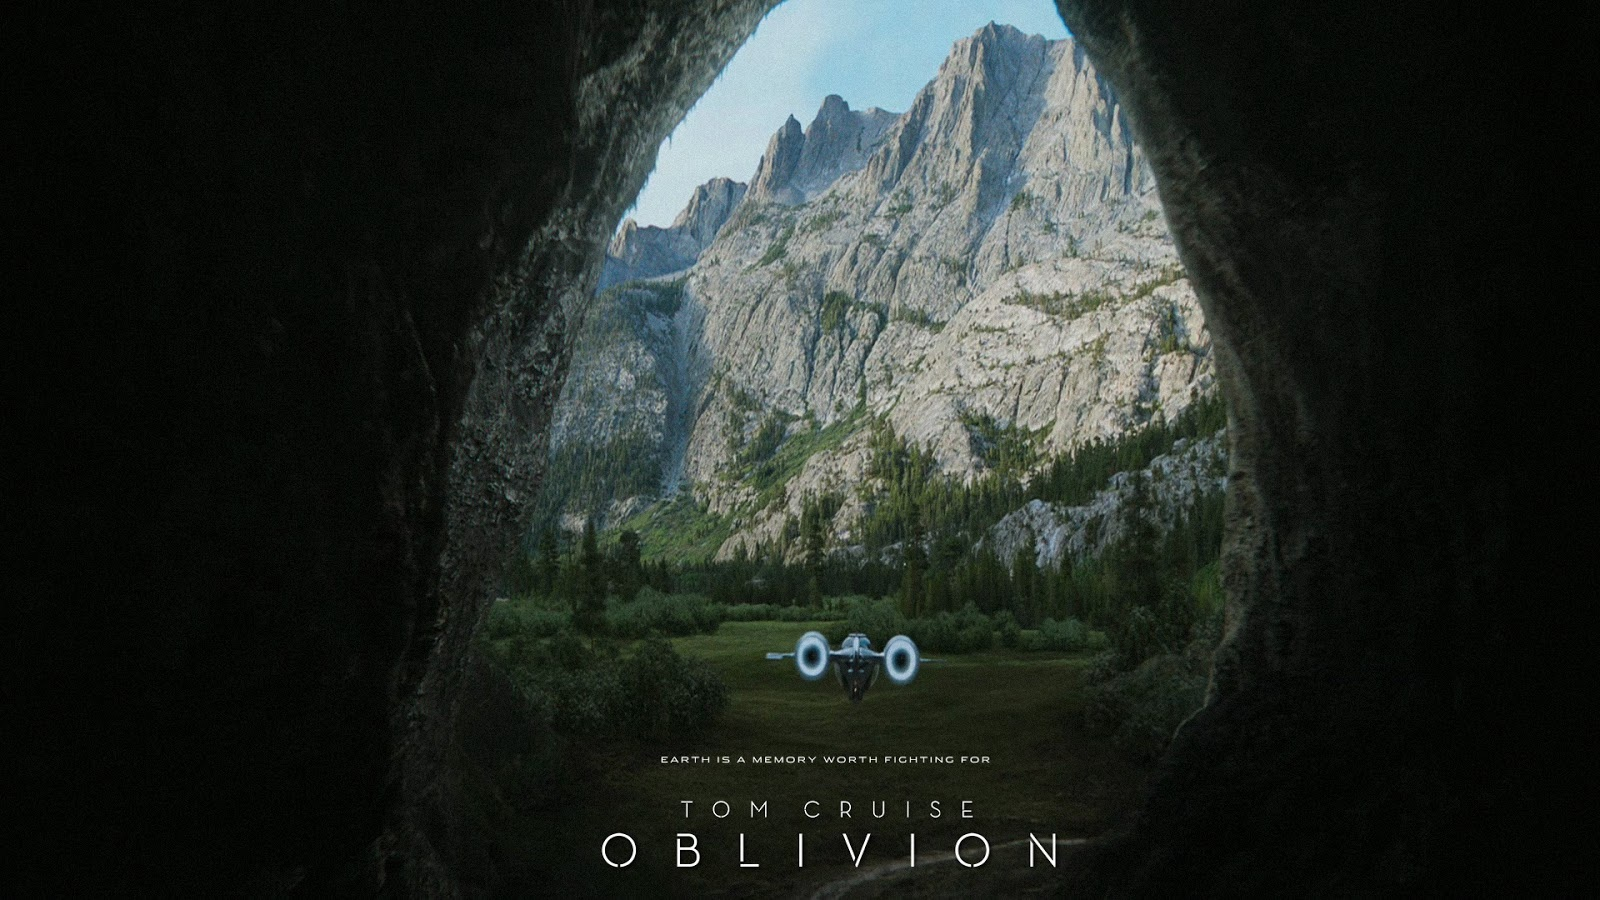 tom cruise oblivion movie wallpaper | download wallpapers page